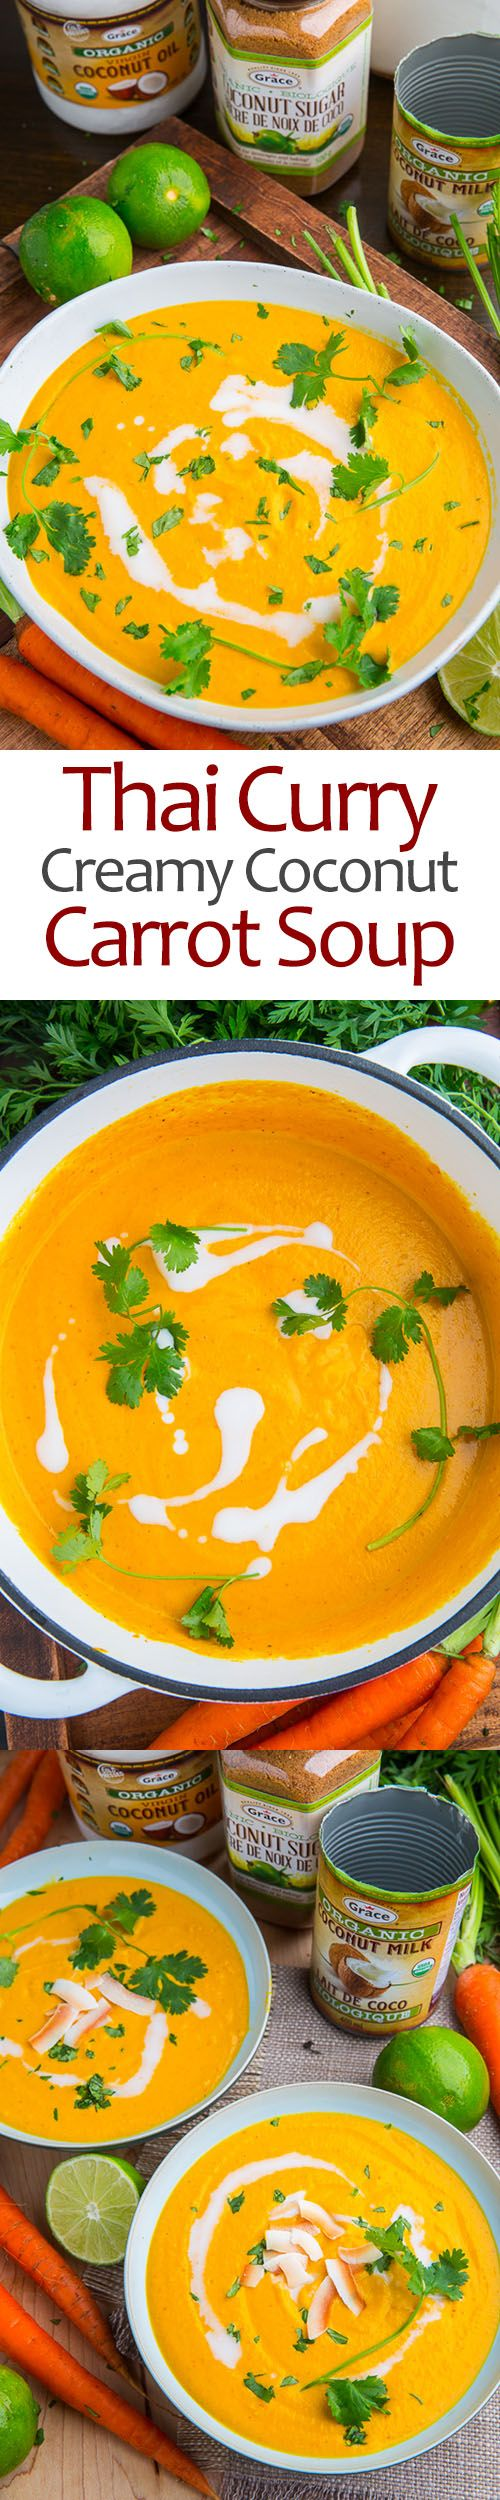 Creamy Curried Coconut Carrot Soup  Find healthy, delicious recipes at www.MarysLocalMarket.com Sustainable-Natural-Community  #maryslocalmarket